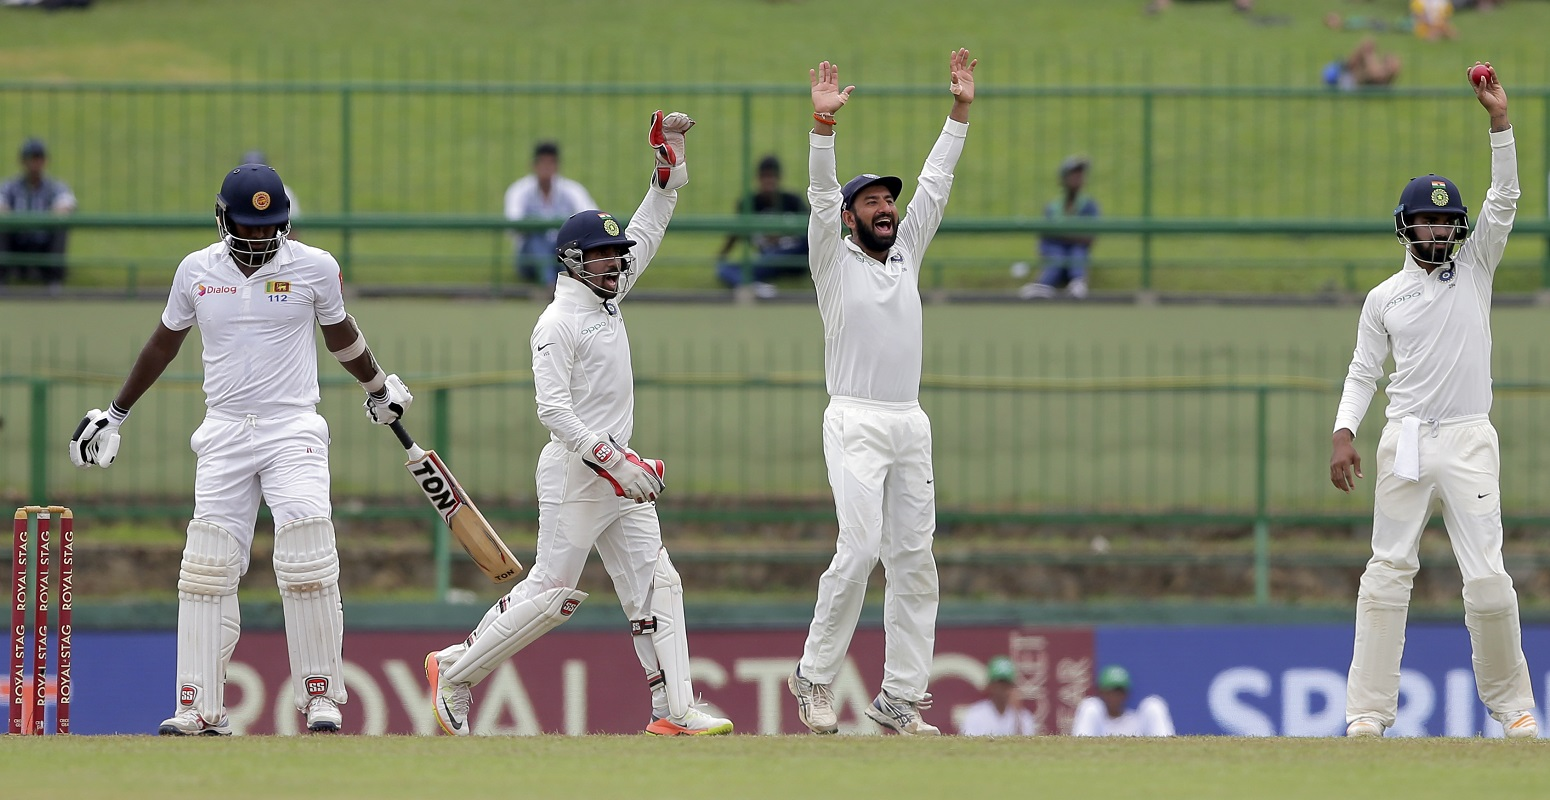 Sri Lanka's Sports Minister Asks for Report from Cricket Board after 3-0 Loss Against India 1